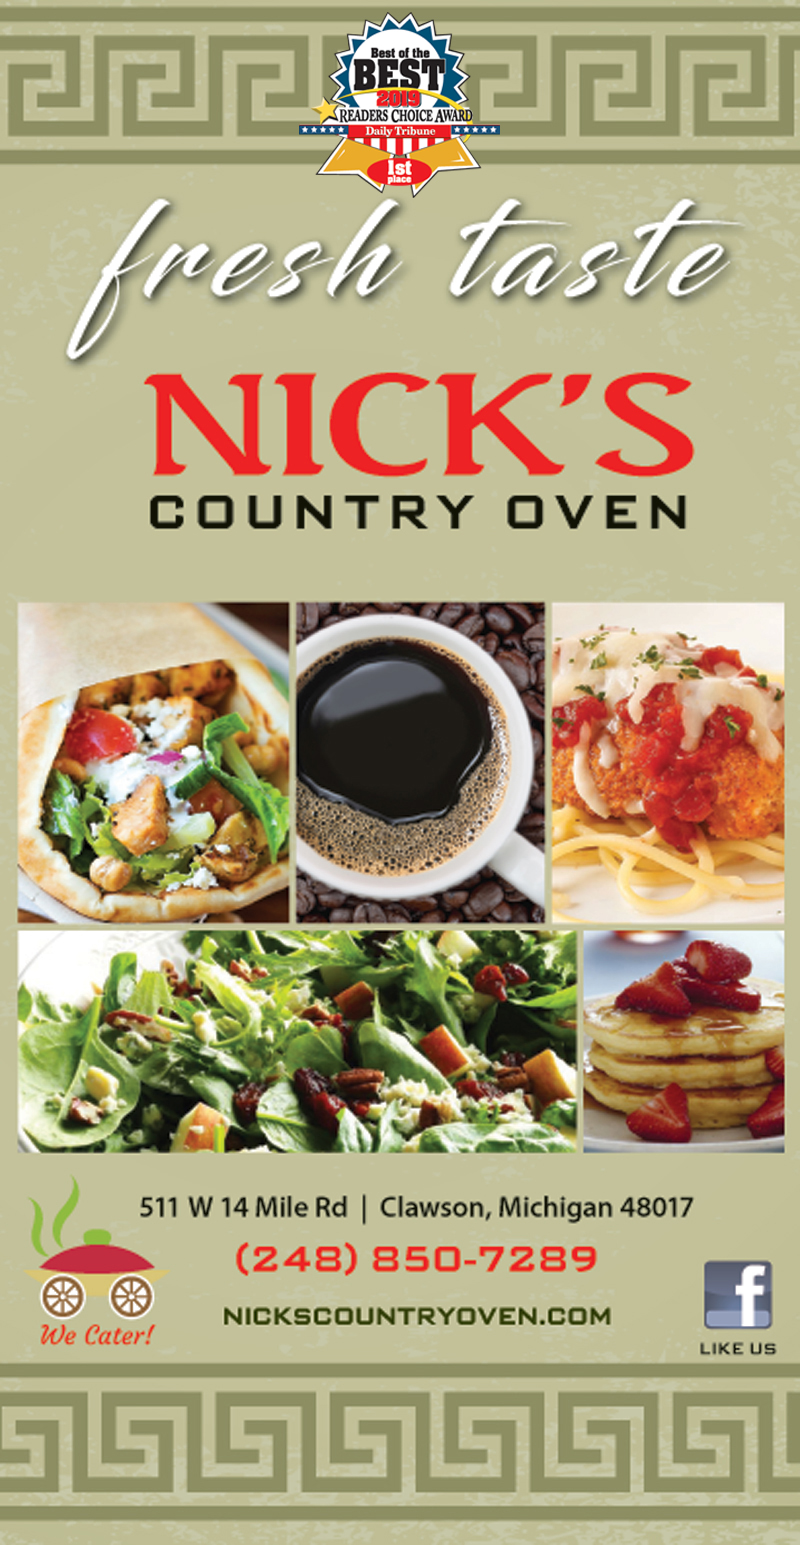 Nicks Country Oven Nicks Country Oven